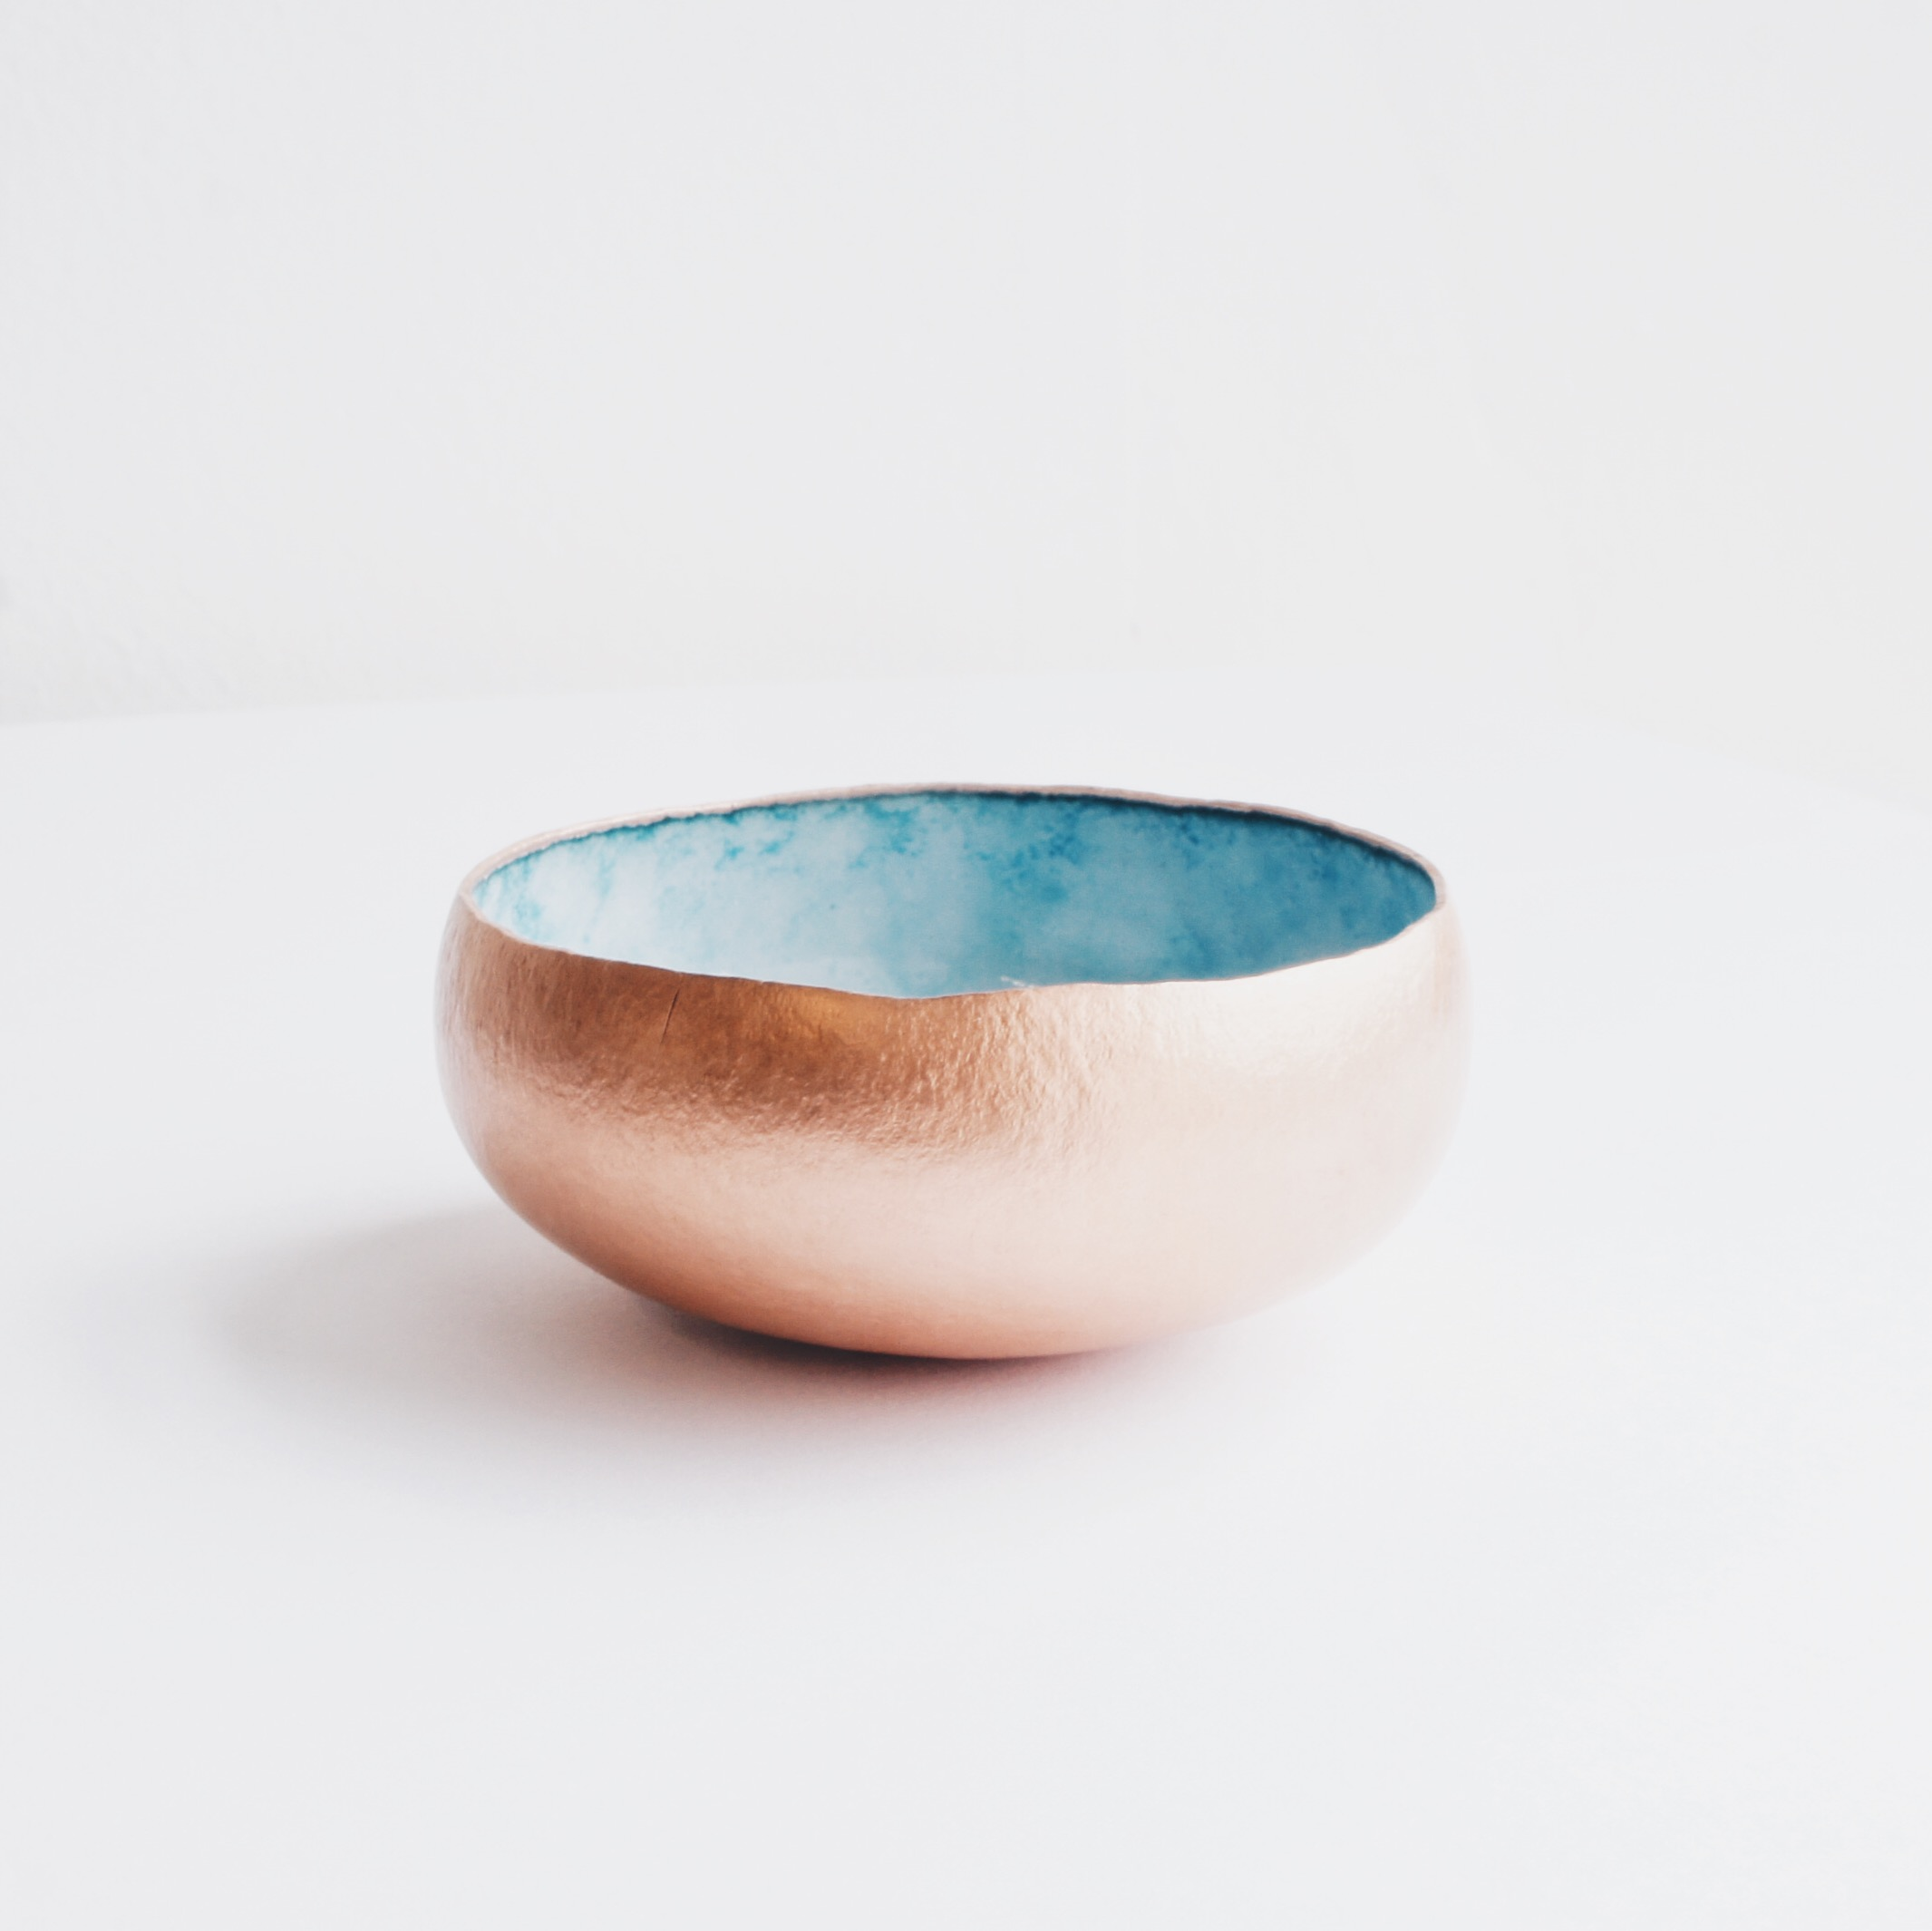 Copper and Enamel Bowl